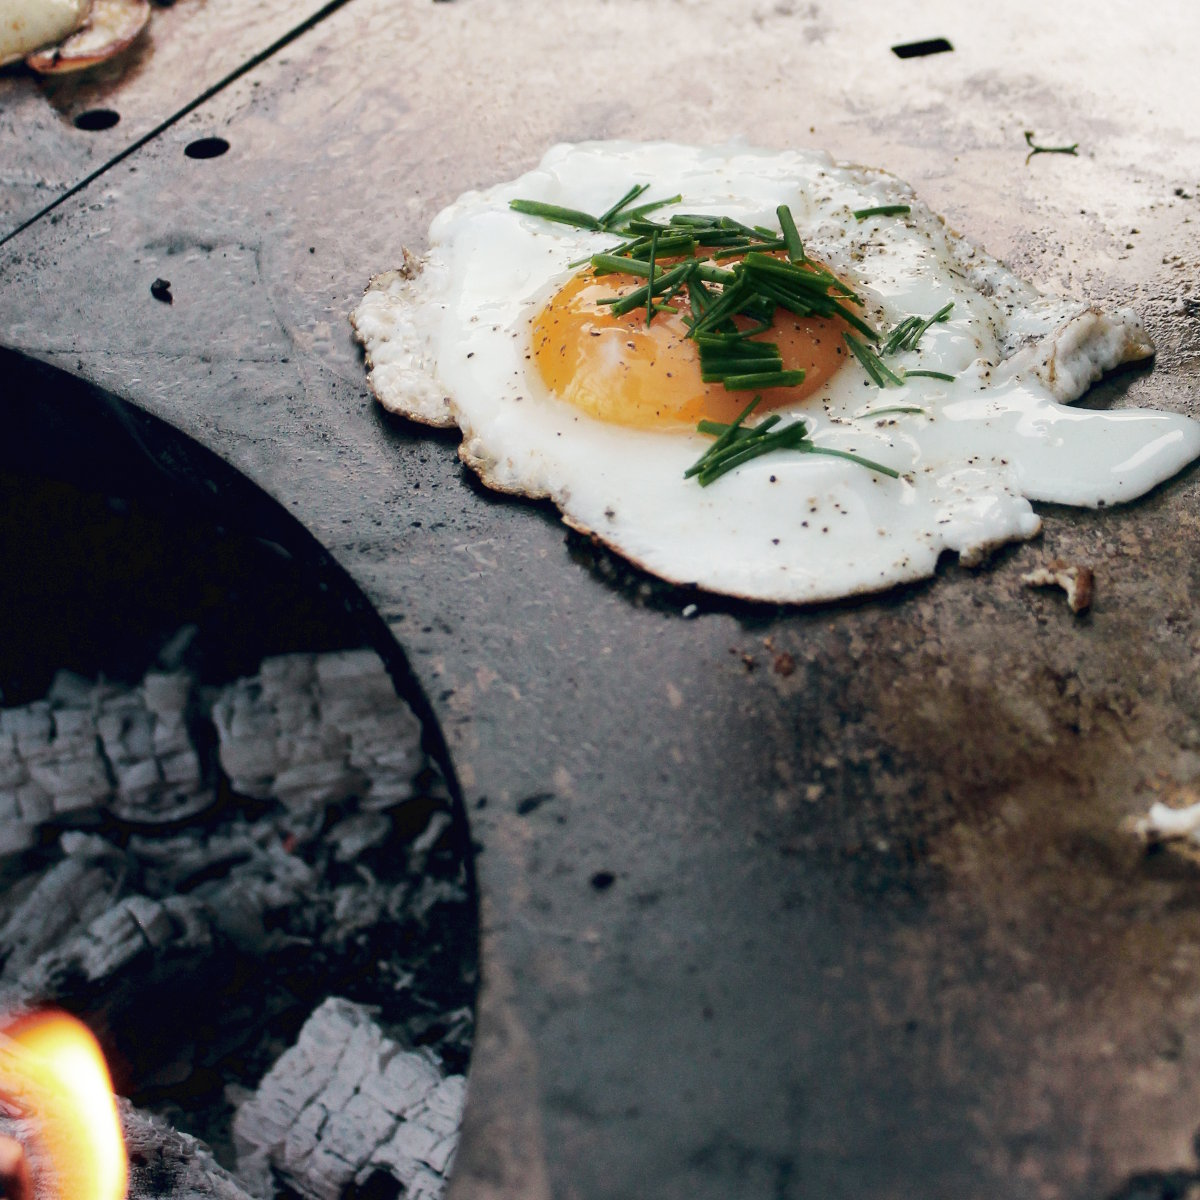 YAGOONA-Ringgrill-holz-feuer-wood-fire-ring-grill-barbecue-in-action012-egg.jpg